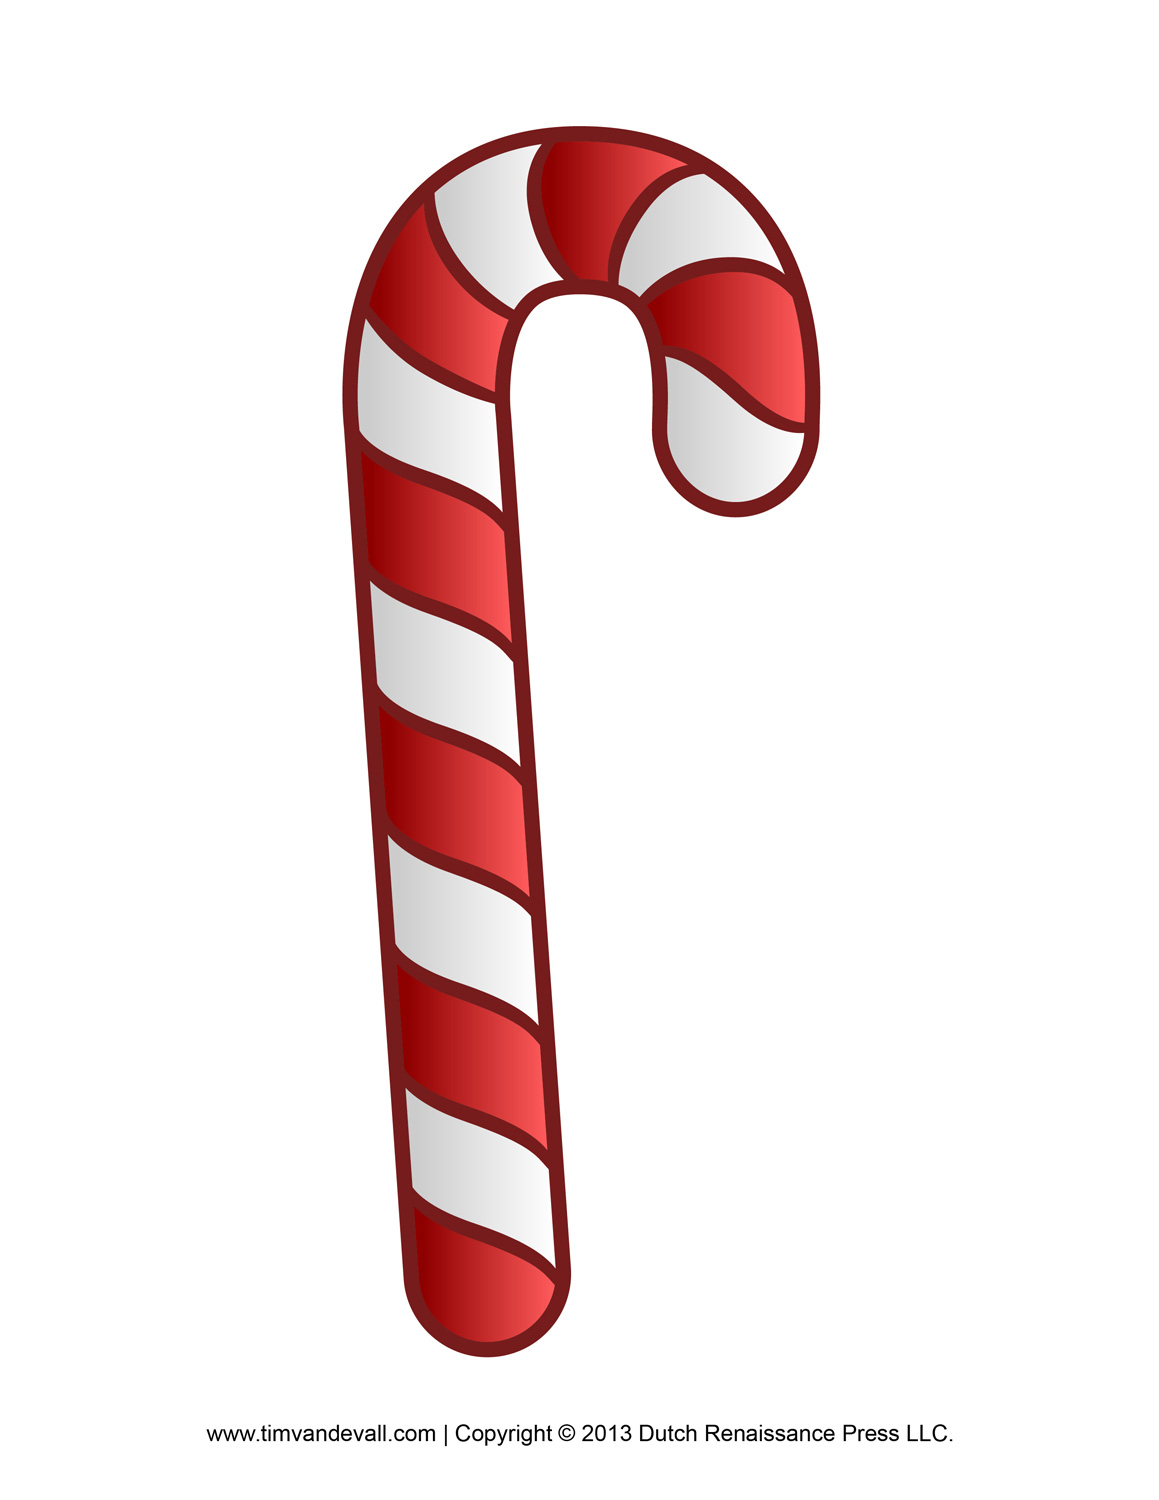 Free Candy Cane Template Printables, Crafts, Clipart & Decorations White Christmas Tree Decorations 2014